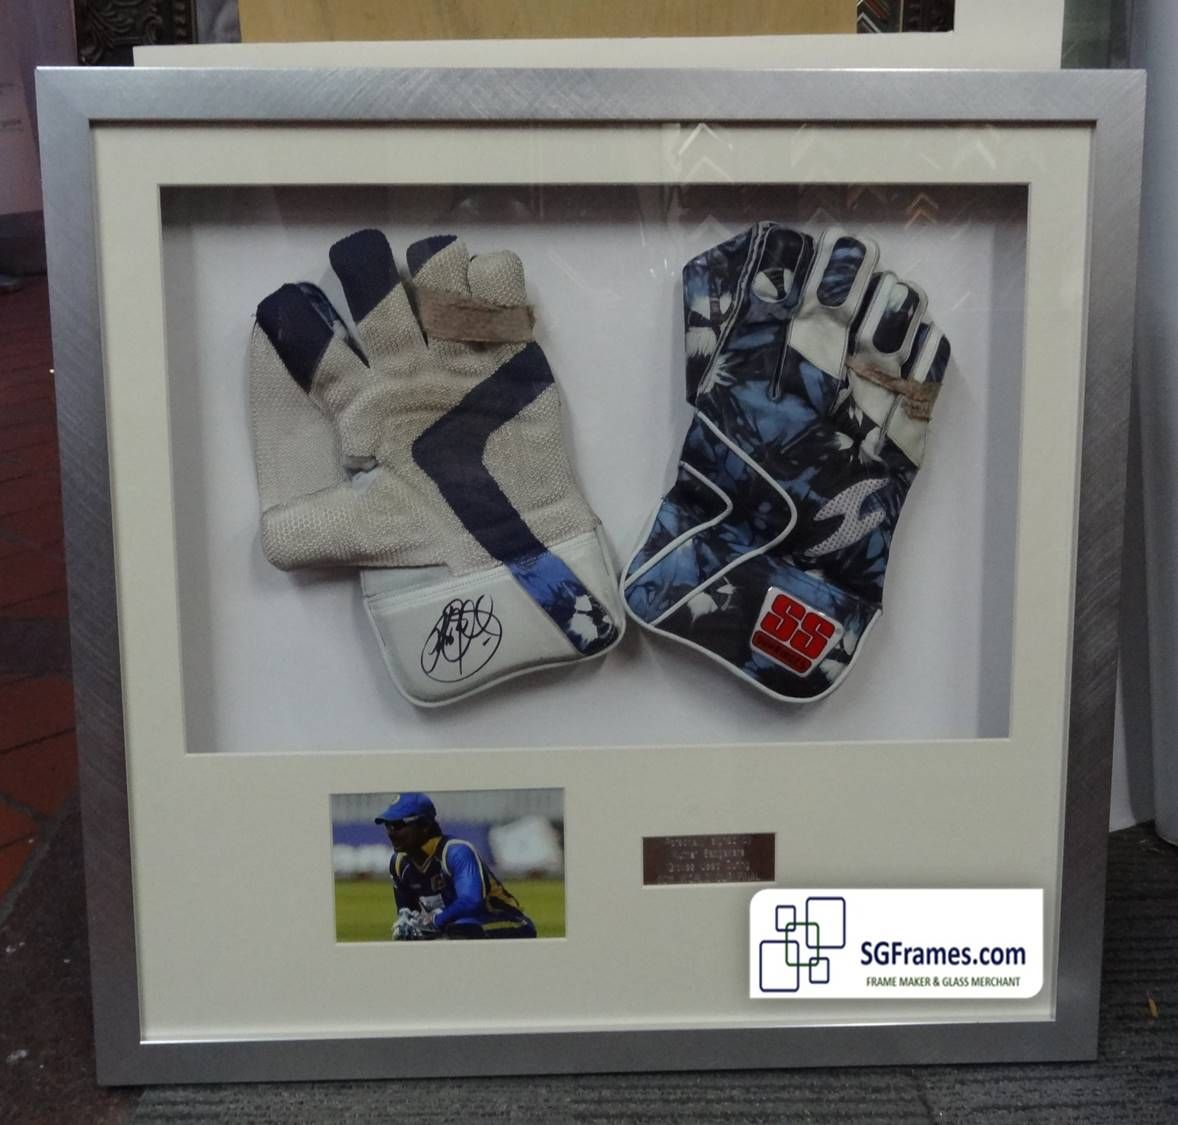 Box Framing For Sports Souvenirs Sgframes One Stop Solution All Your Requirements